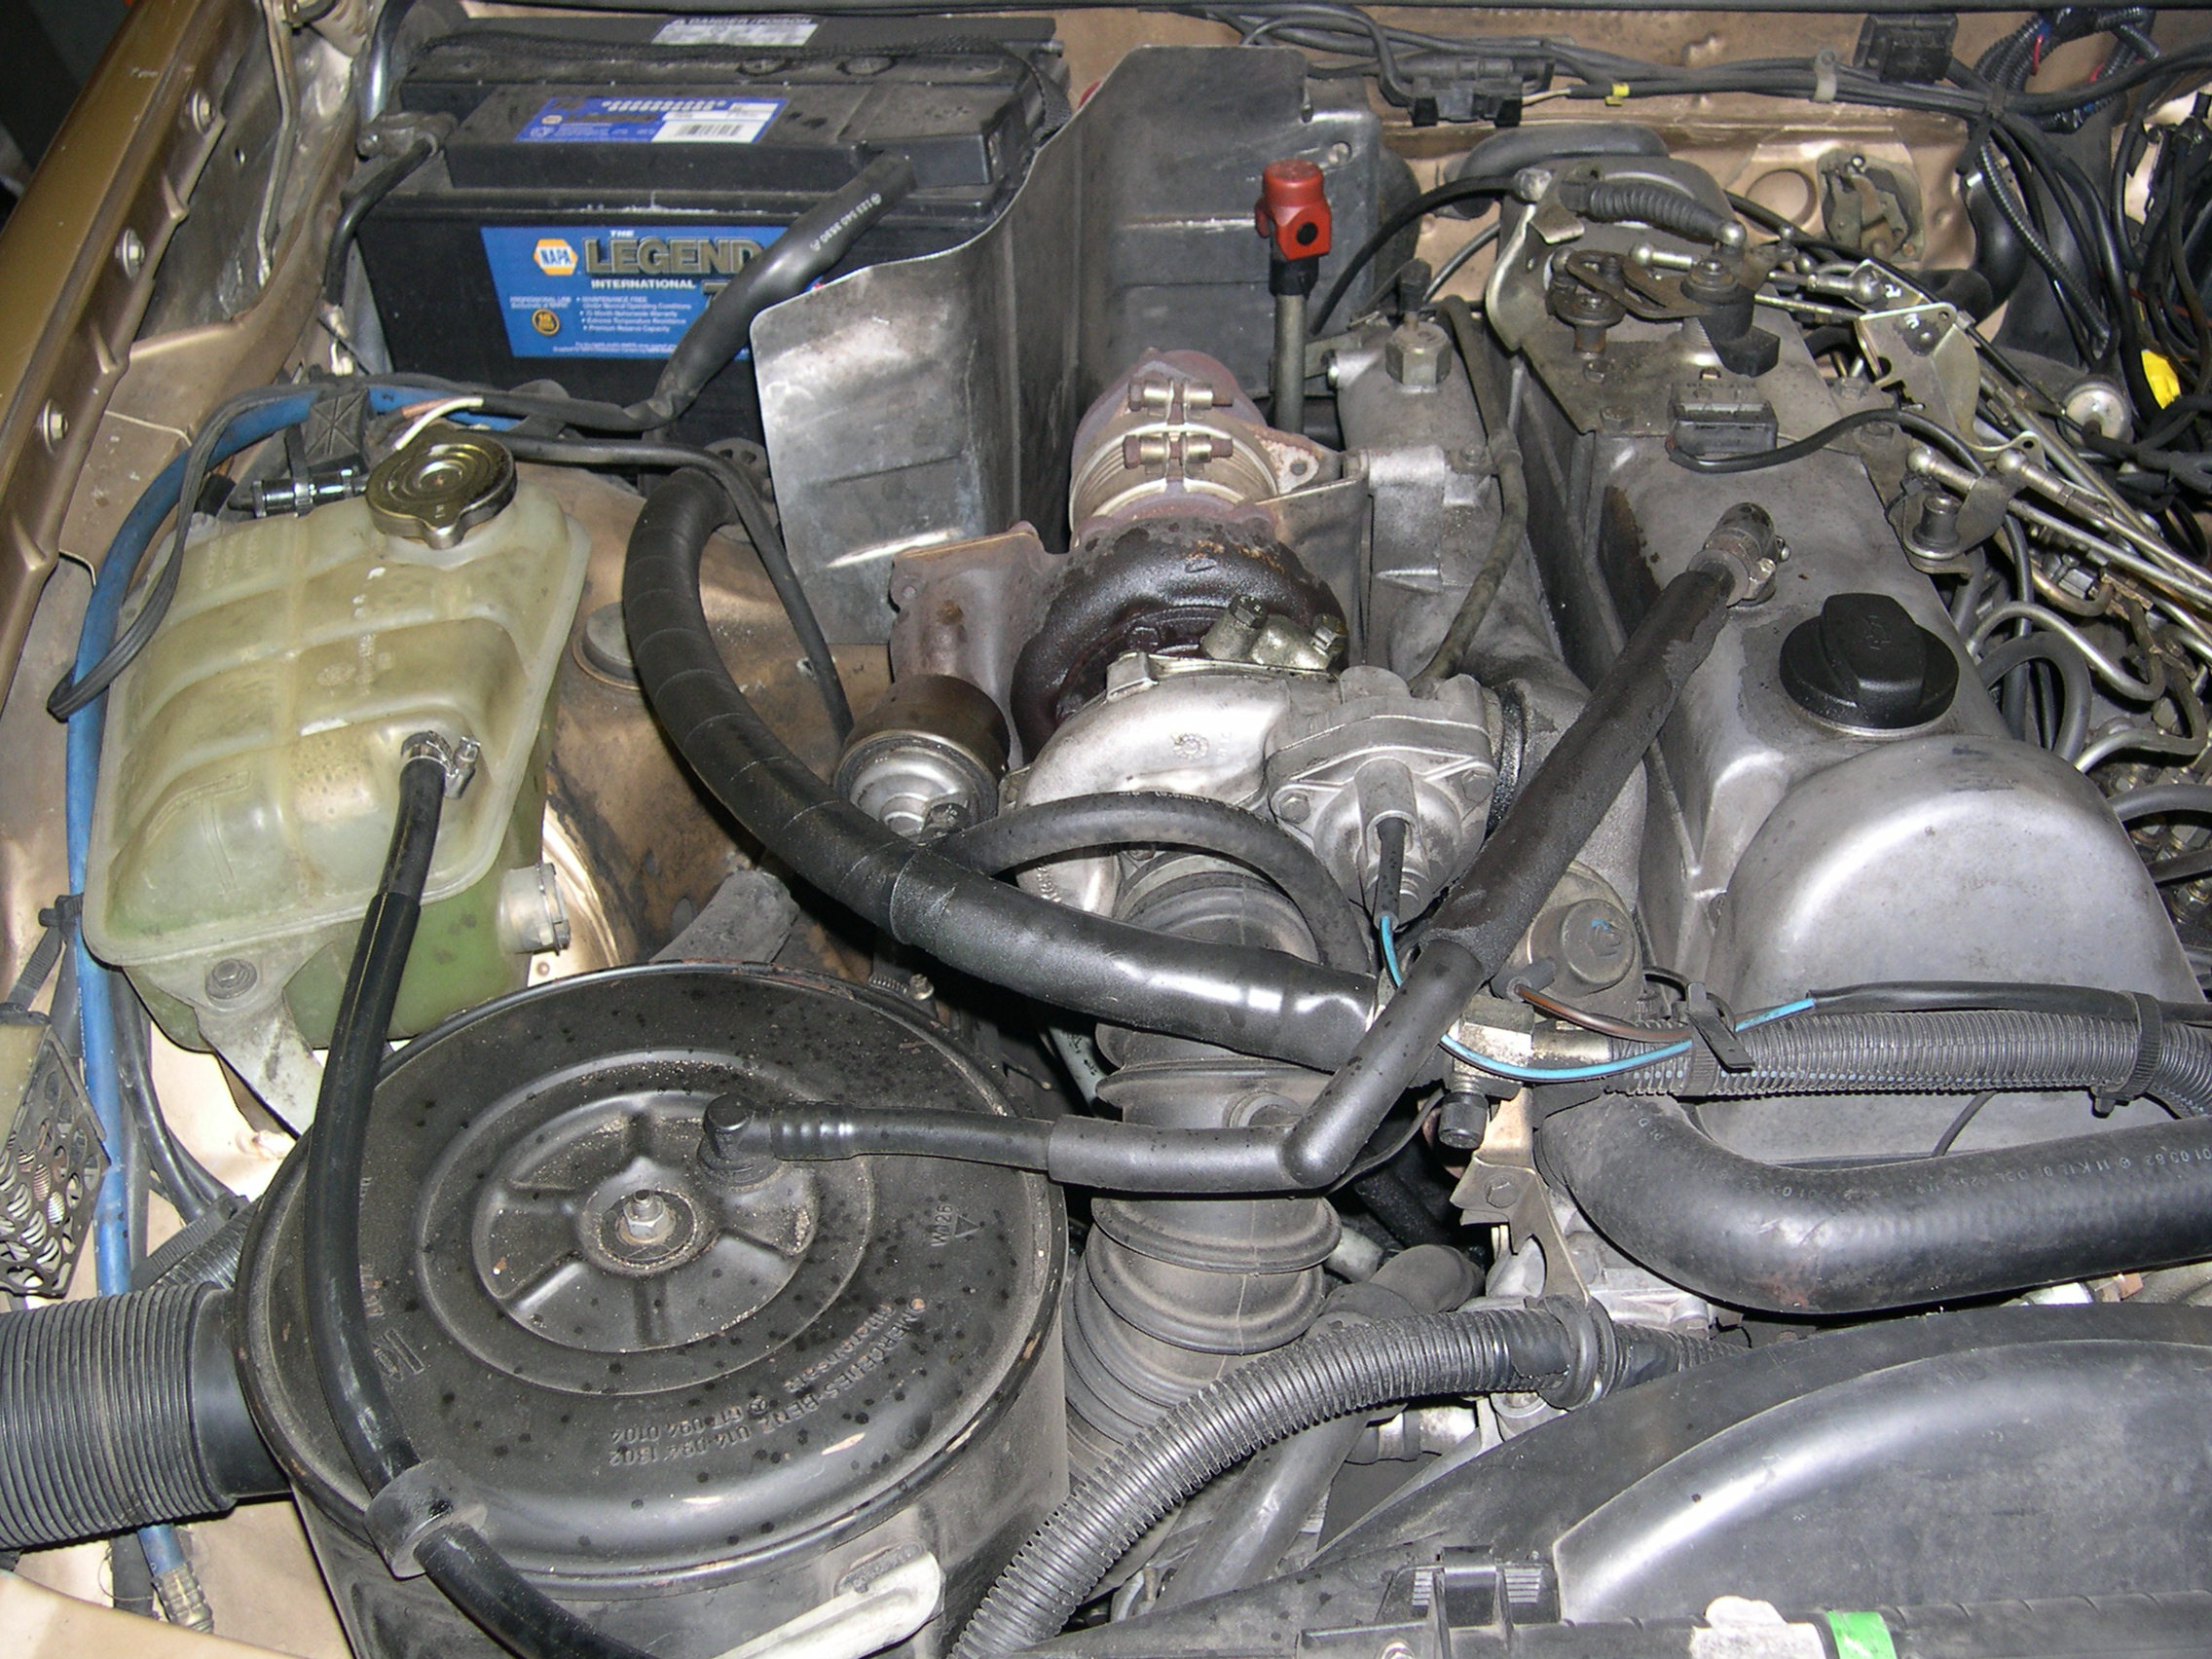 Mercedes 5 cylinder turbo diesel engine for sale for Mercedes benz diesel engines for sale